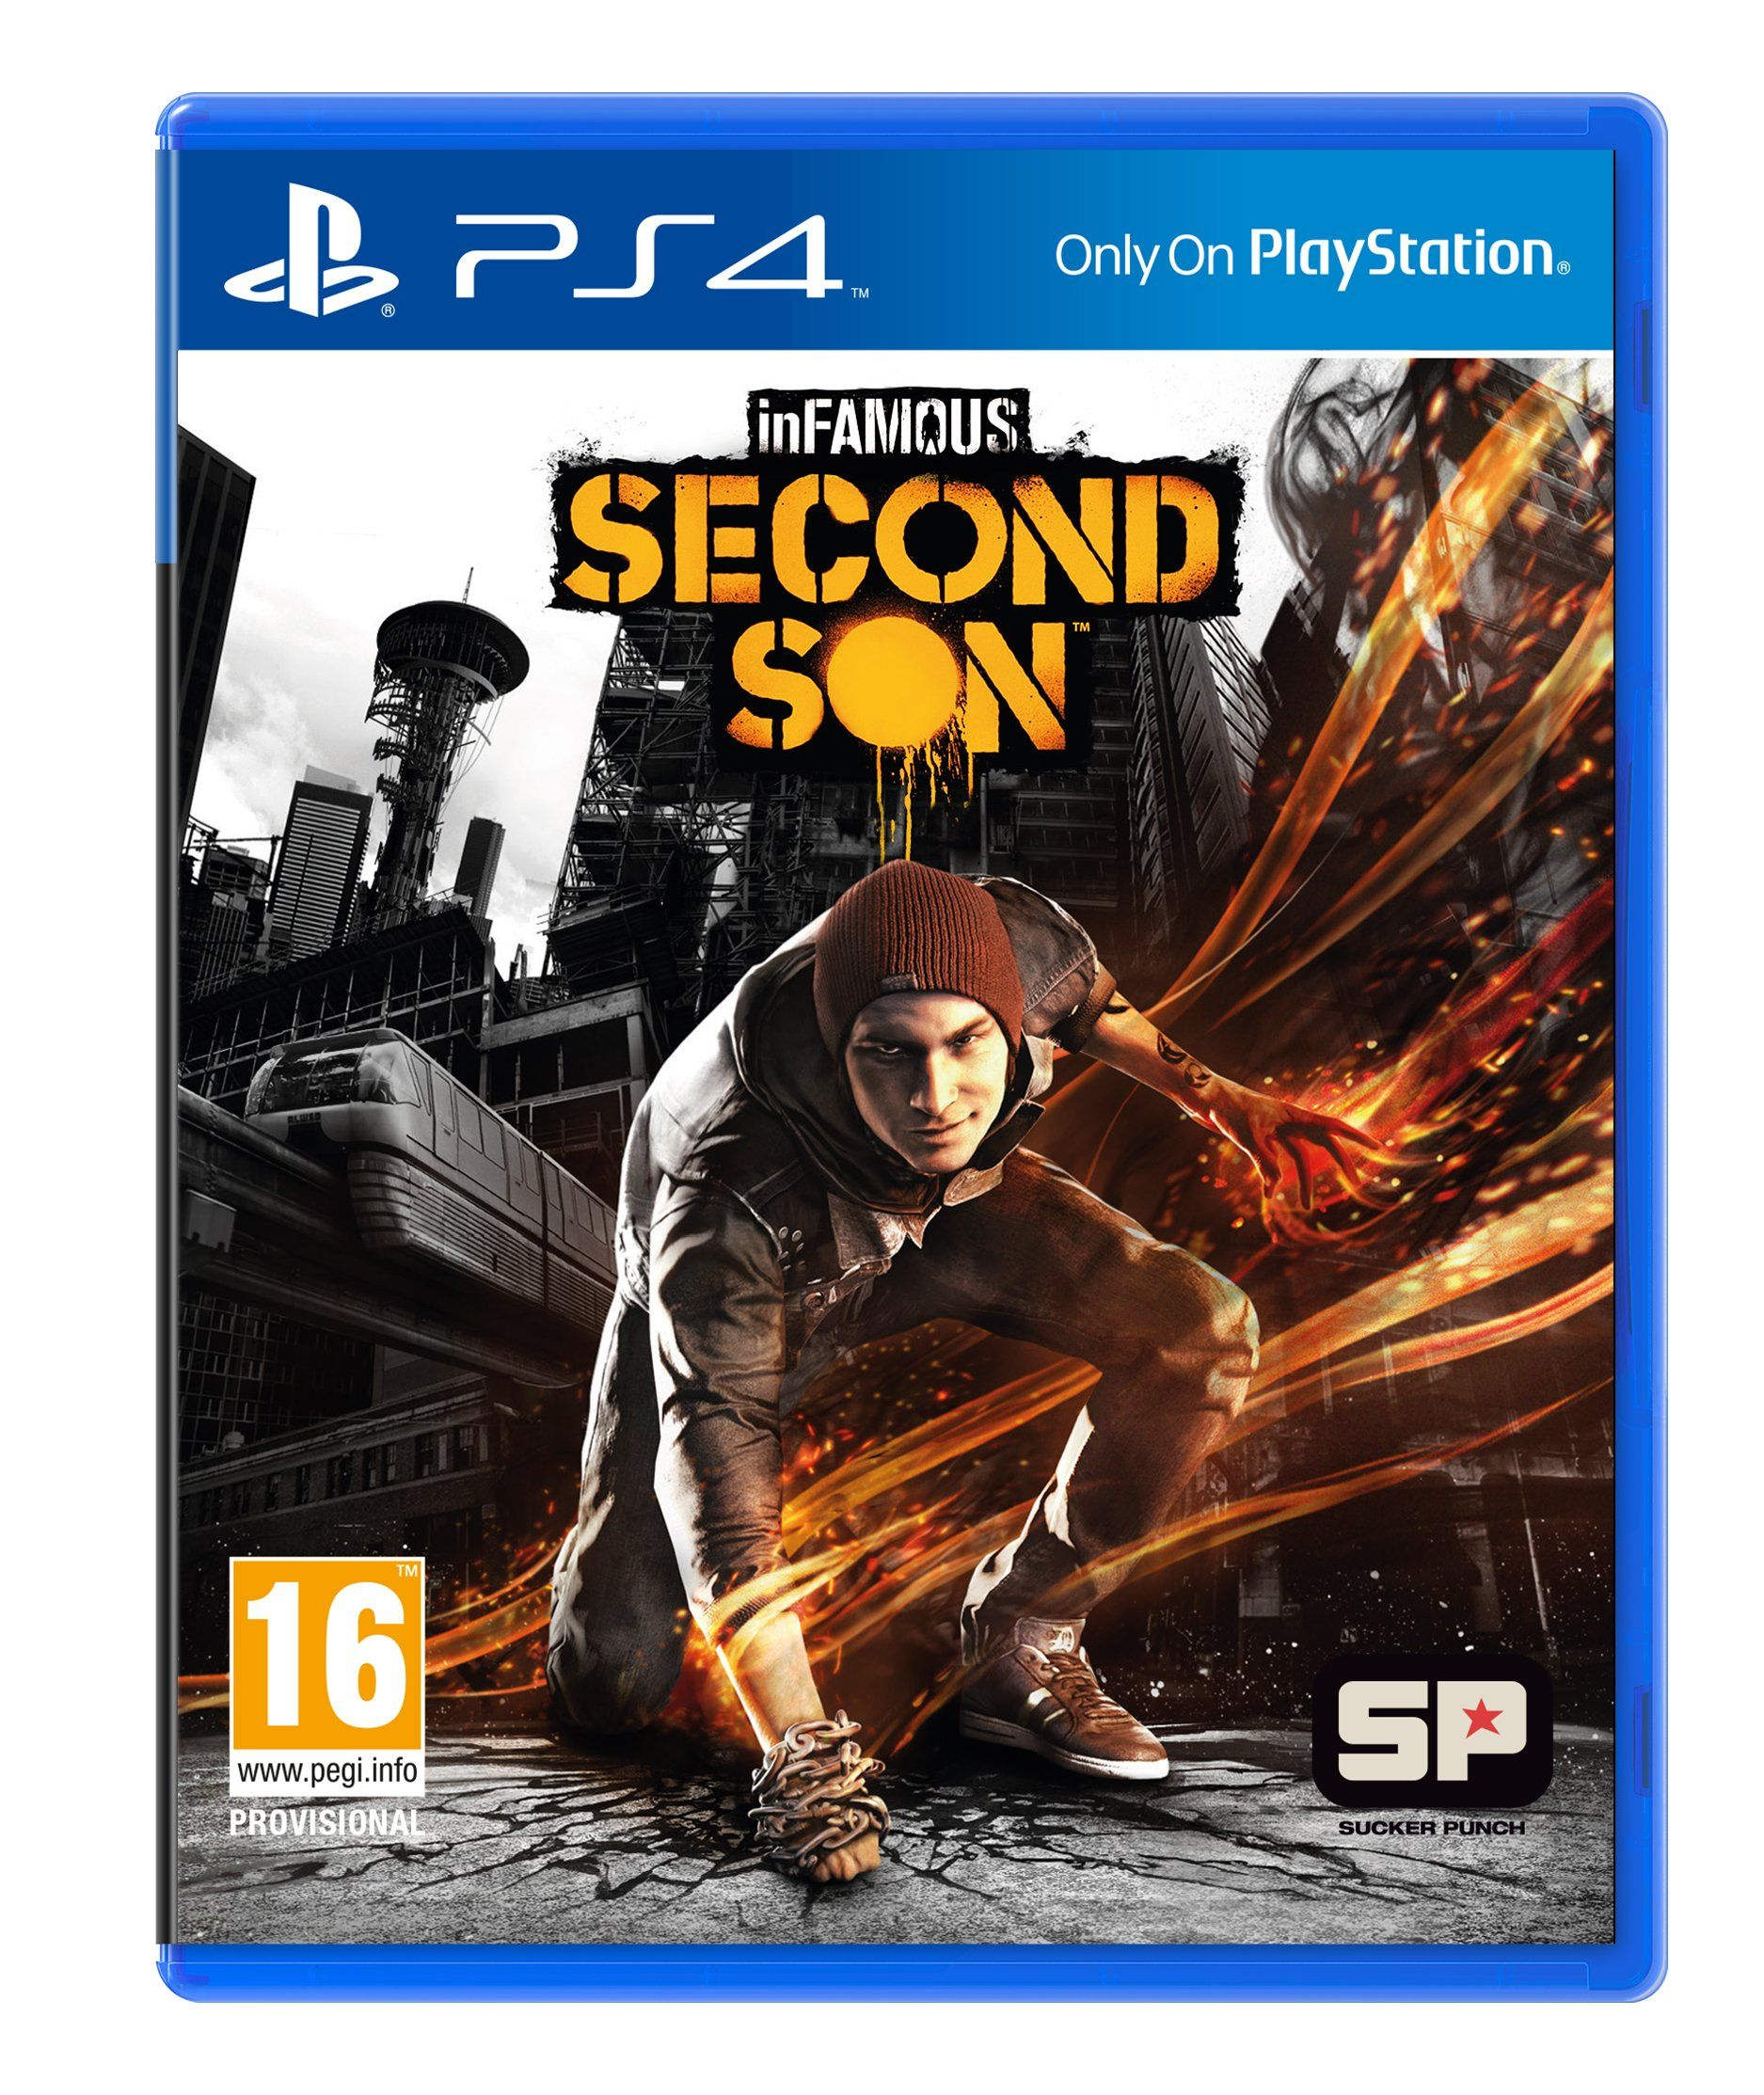 inFAMOUS: Second Son (PS4): Amazon.co.uk: PC & Video Games